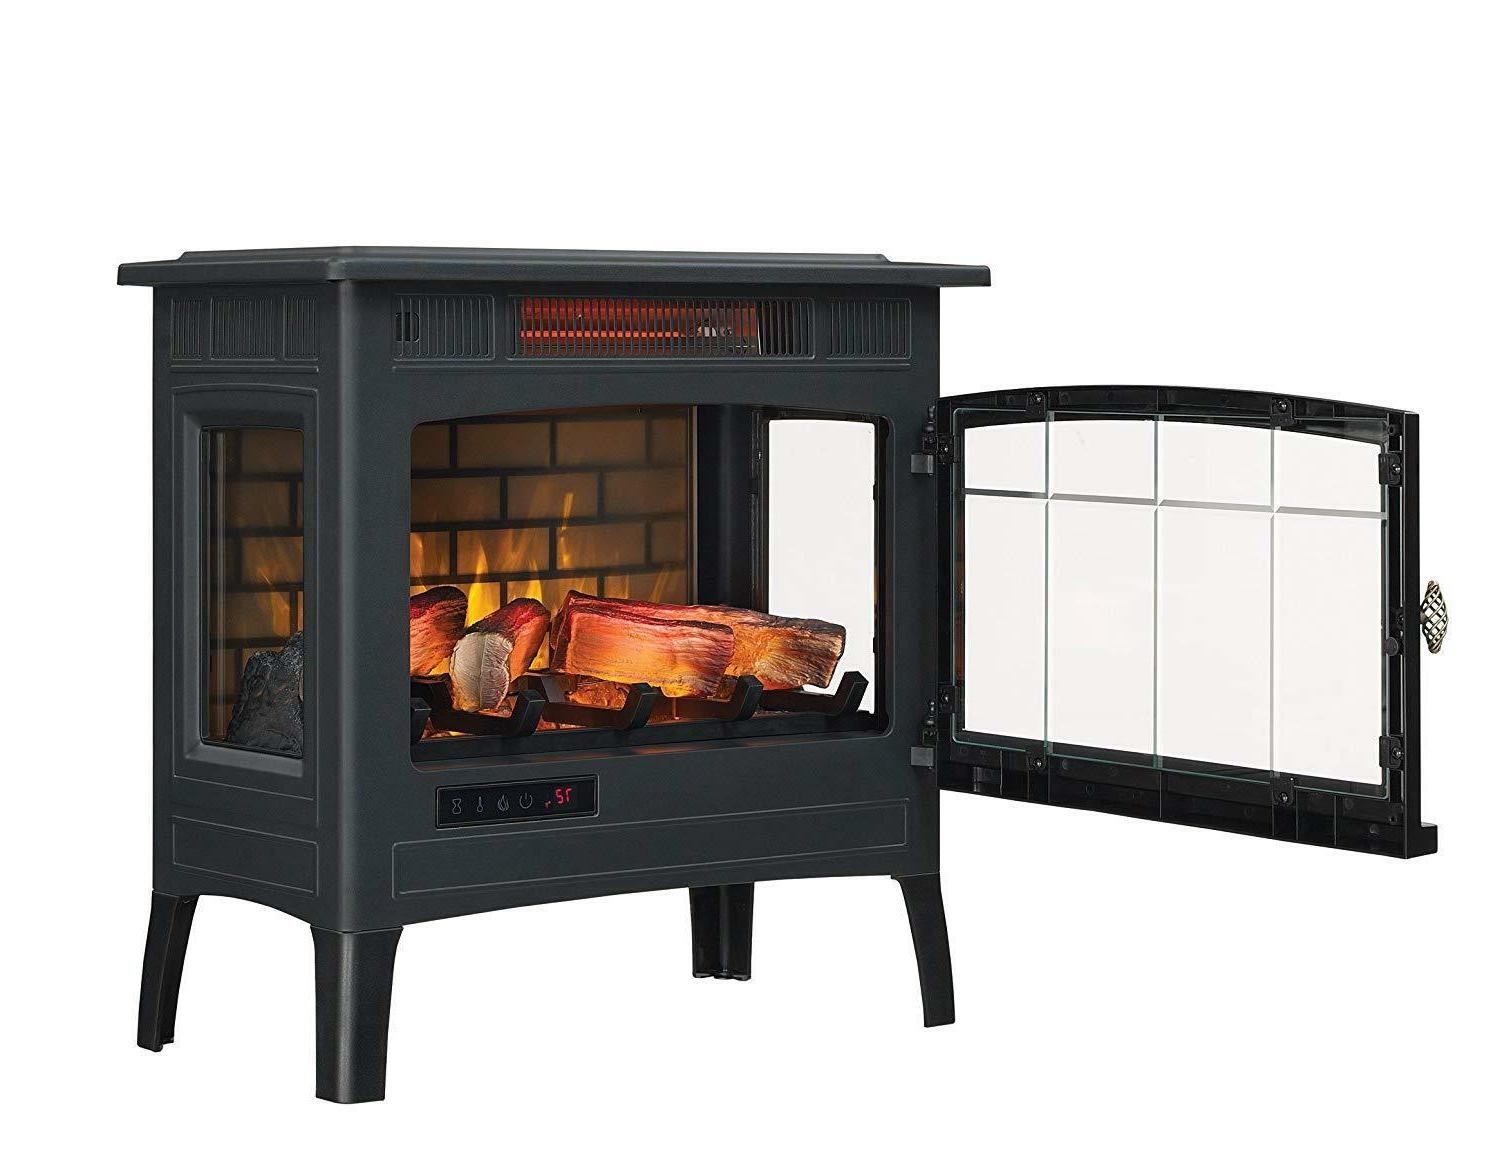 Electric Fireplace Fireplaces with Remote Control